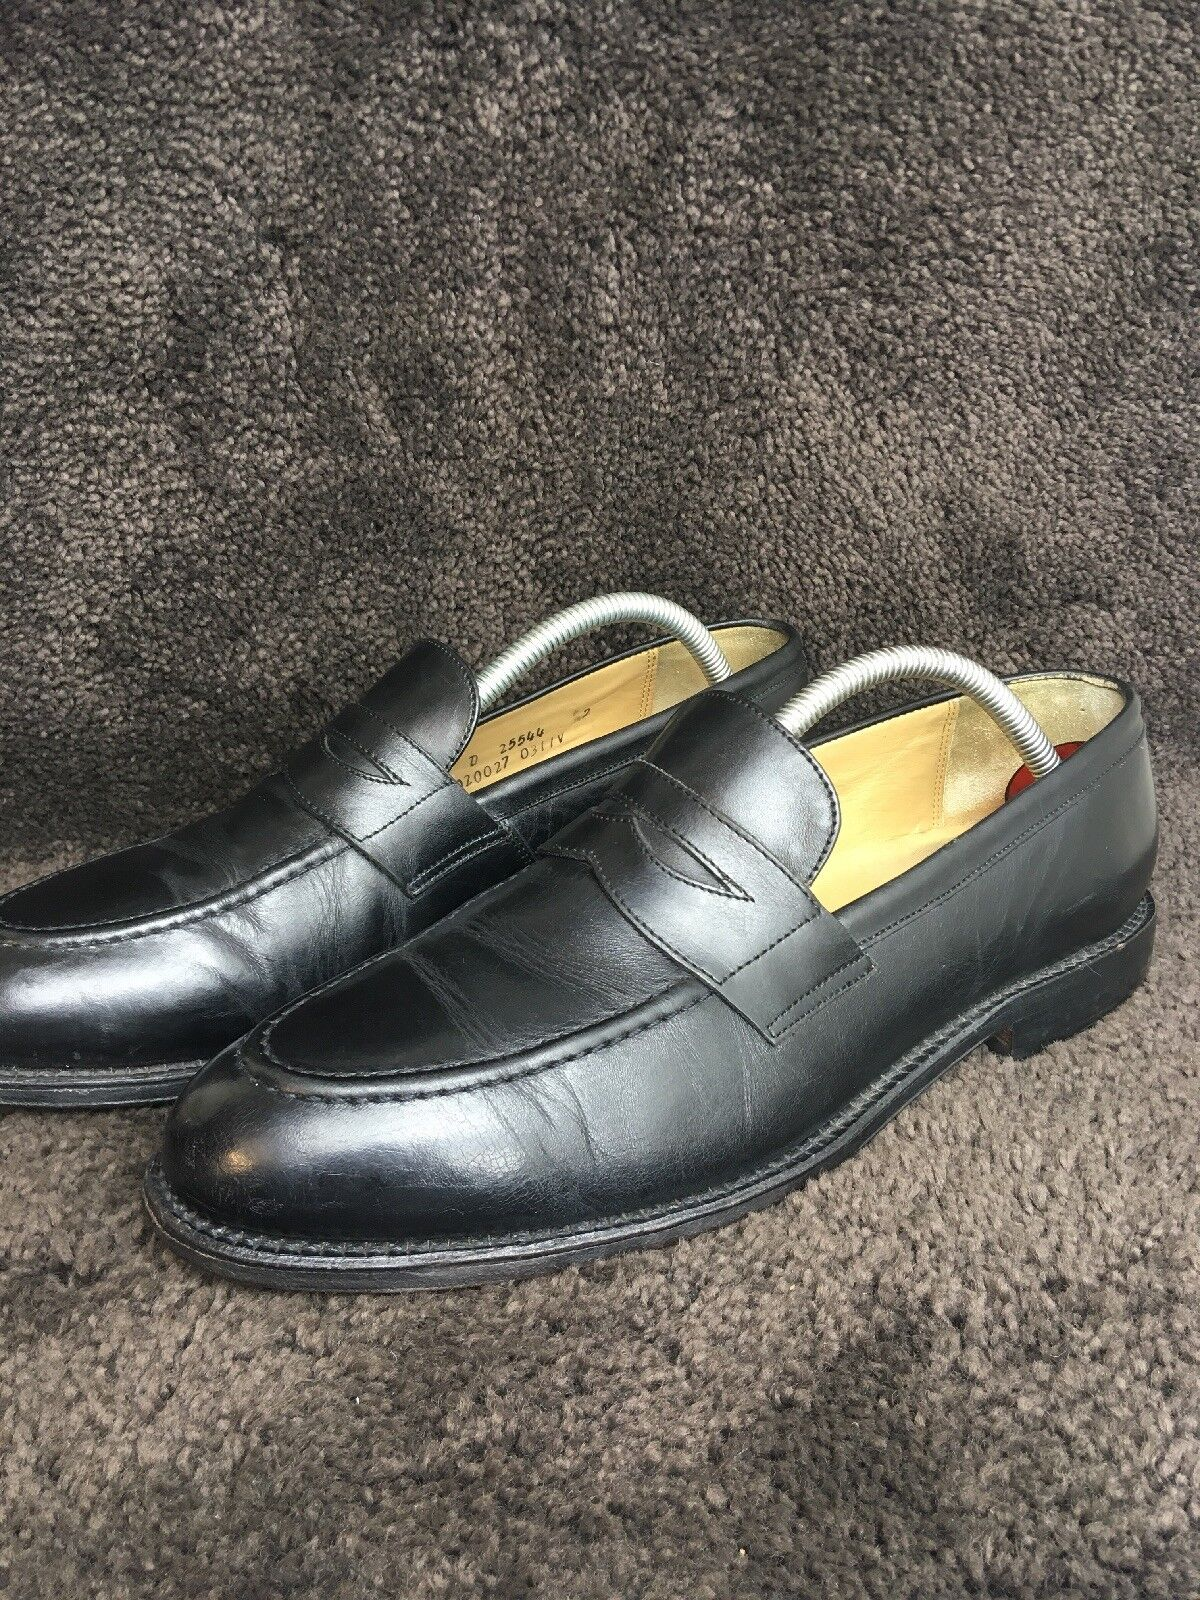 1c28ba4b80e Brooks Bredhers 346 Penny Loafers Black Black Black Leather Sz 8.5 D 227  daf45d